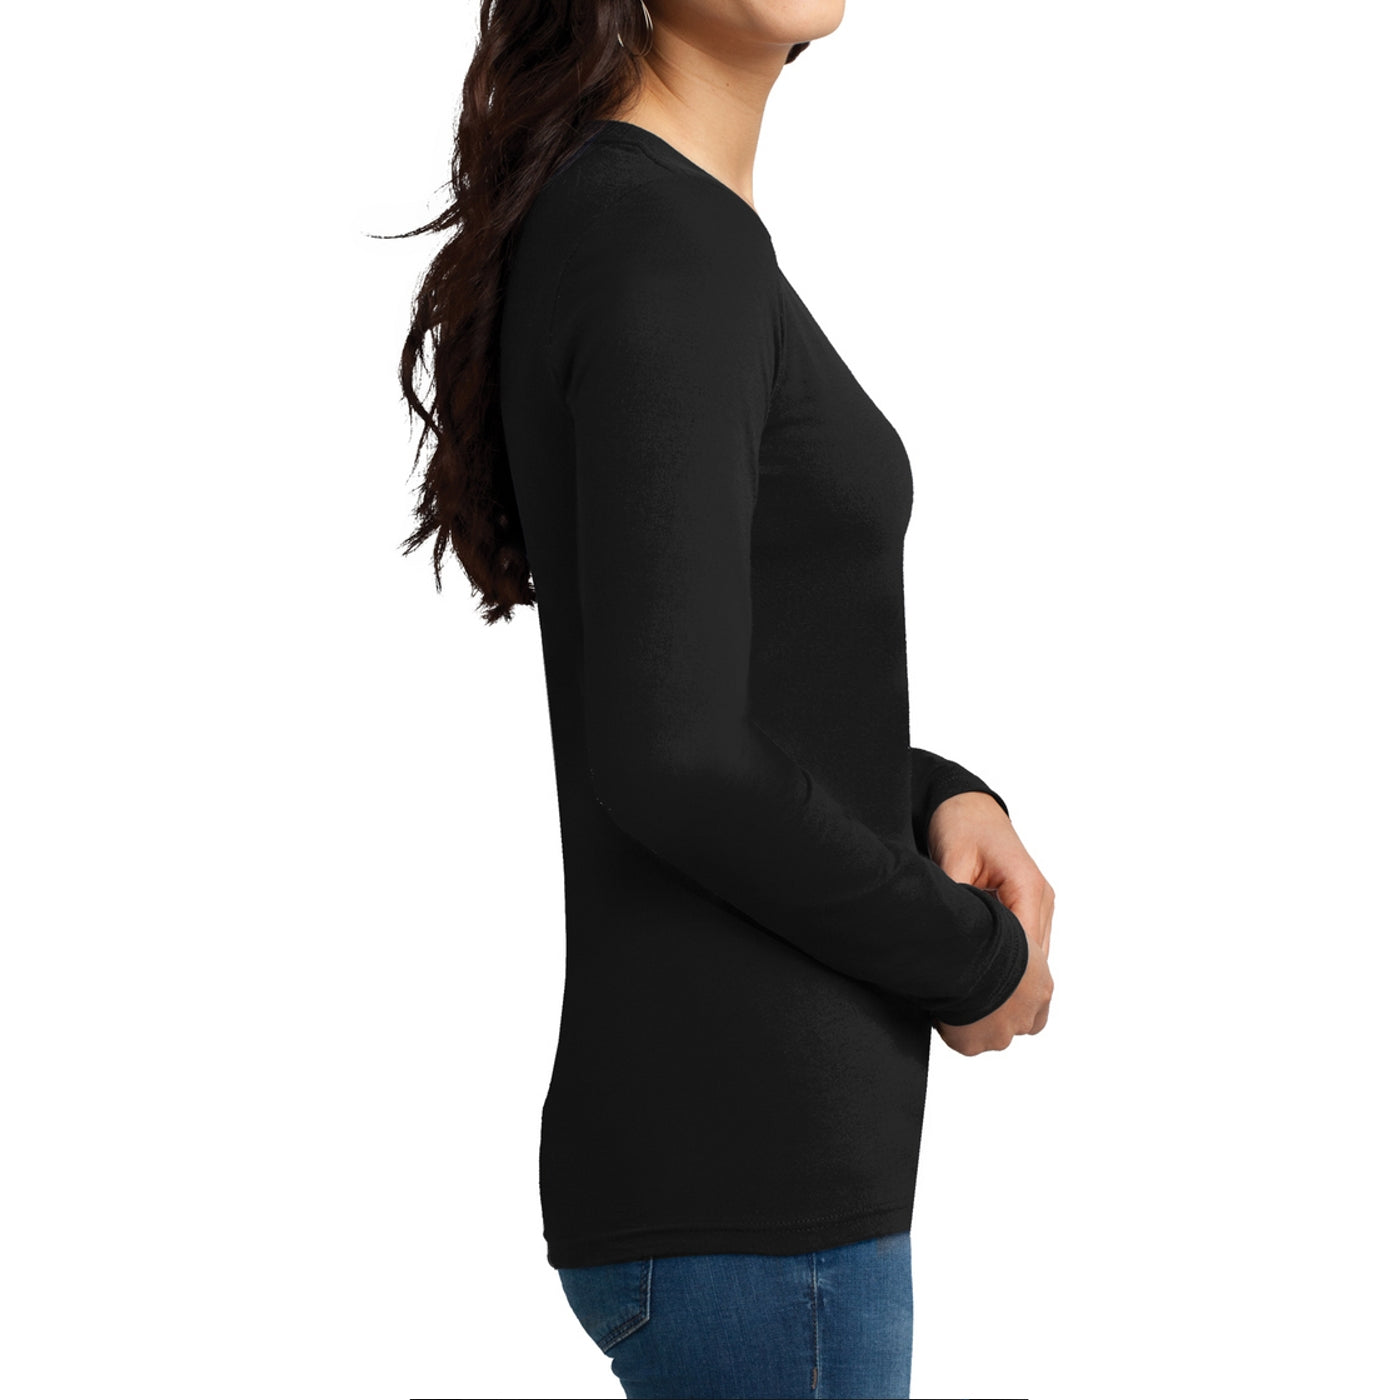 Women's Juniors The Concert Tee Long Sleeve V-Neck - Black